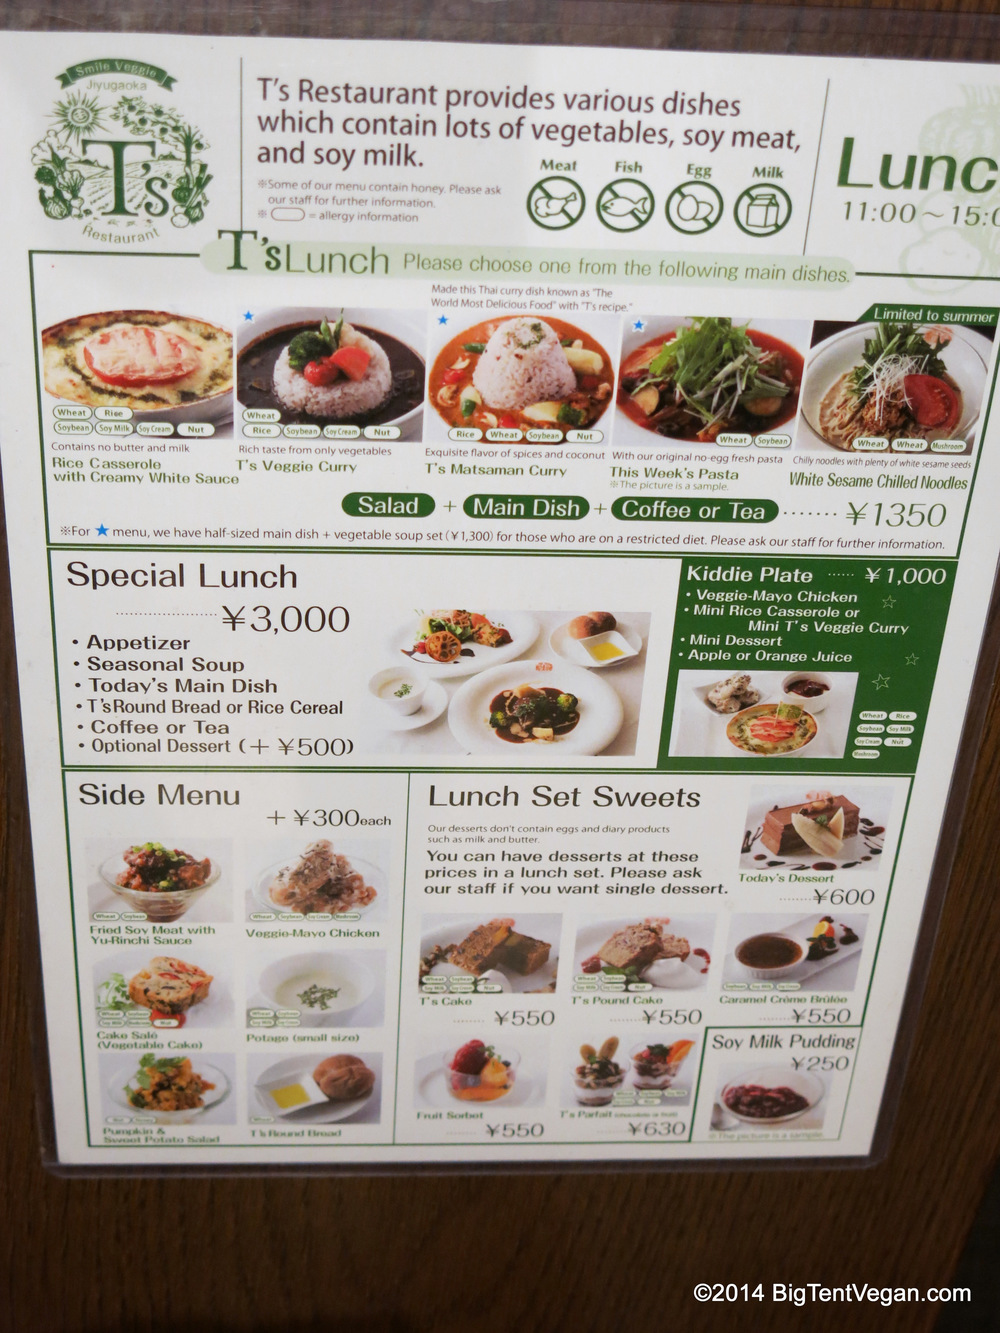 T's Restaurant Lunch Menu as of July 2014 (click to enlarge)